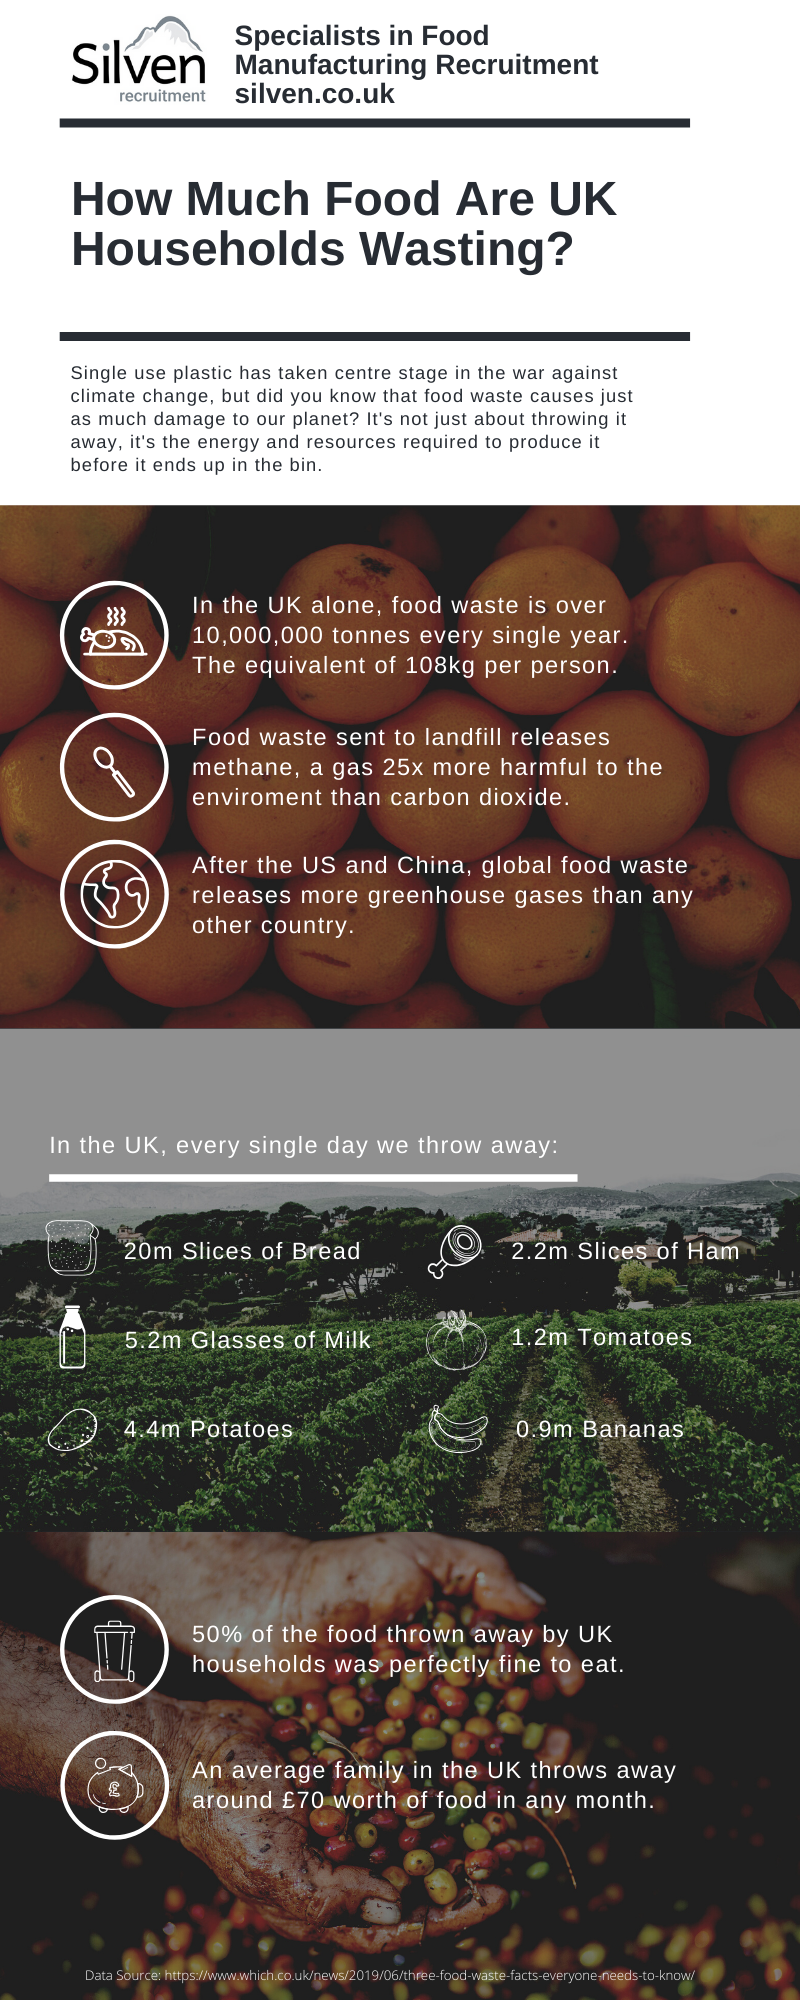 Food Wastage Stats in the UK